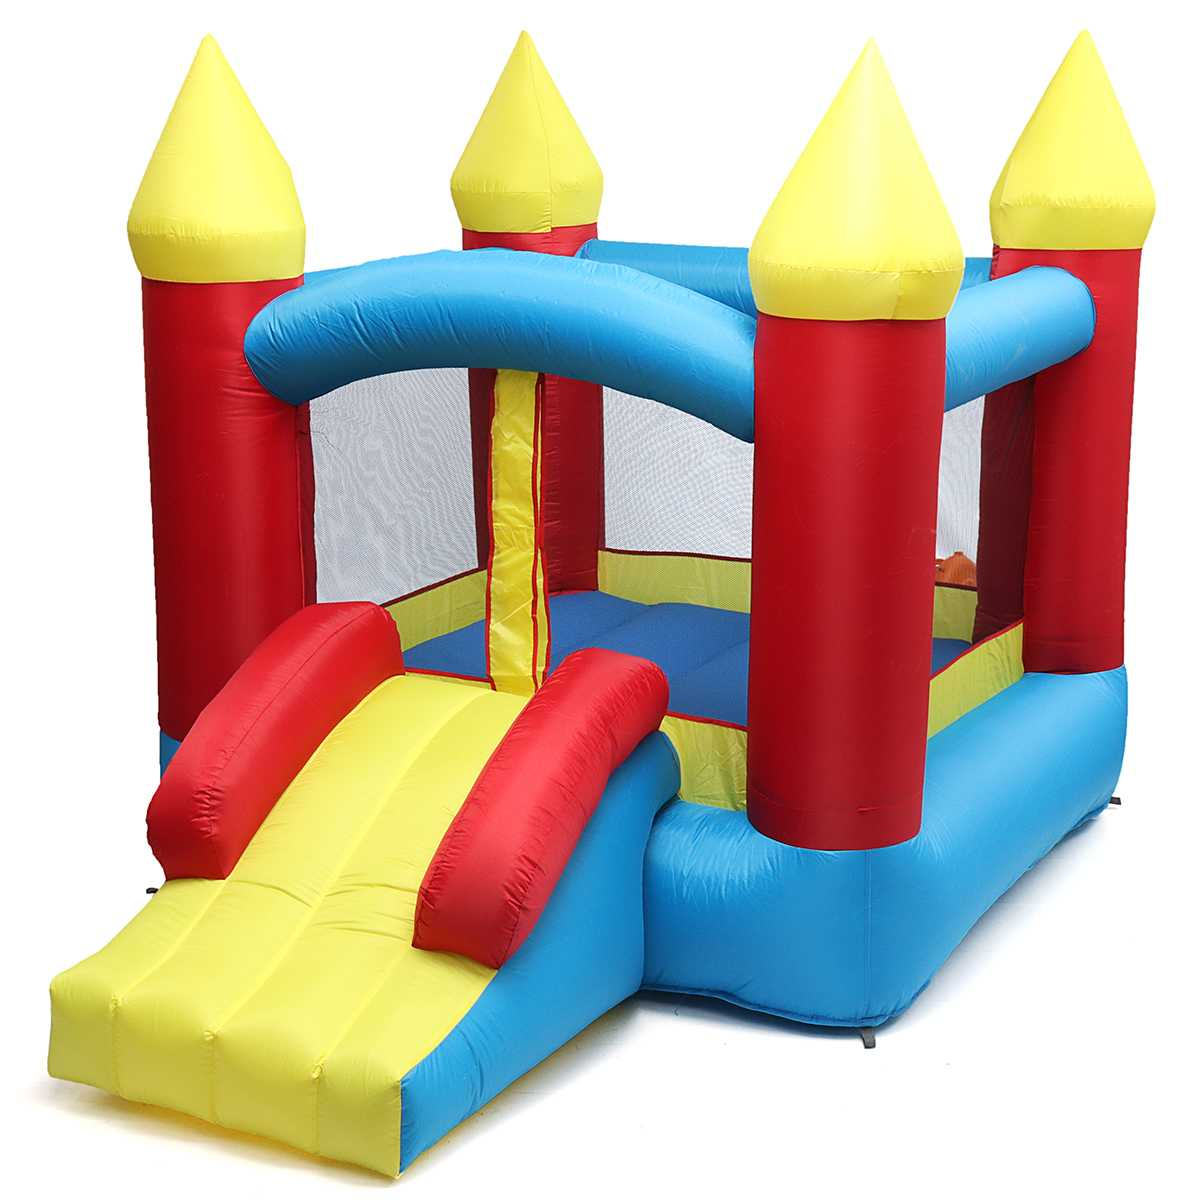 Kids Inflatable Moonwalk Bounce House Jumper Bouncer Jump Bouncy Castles With Slide Outdoor Children's Playground